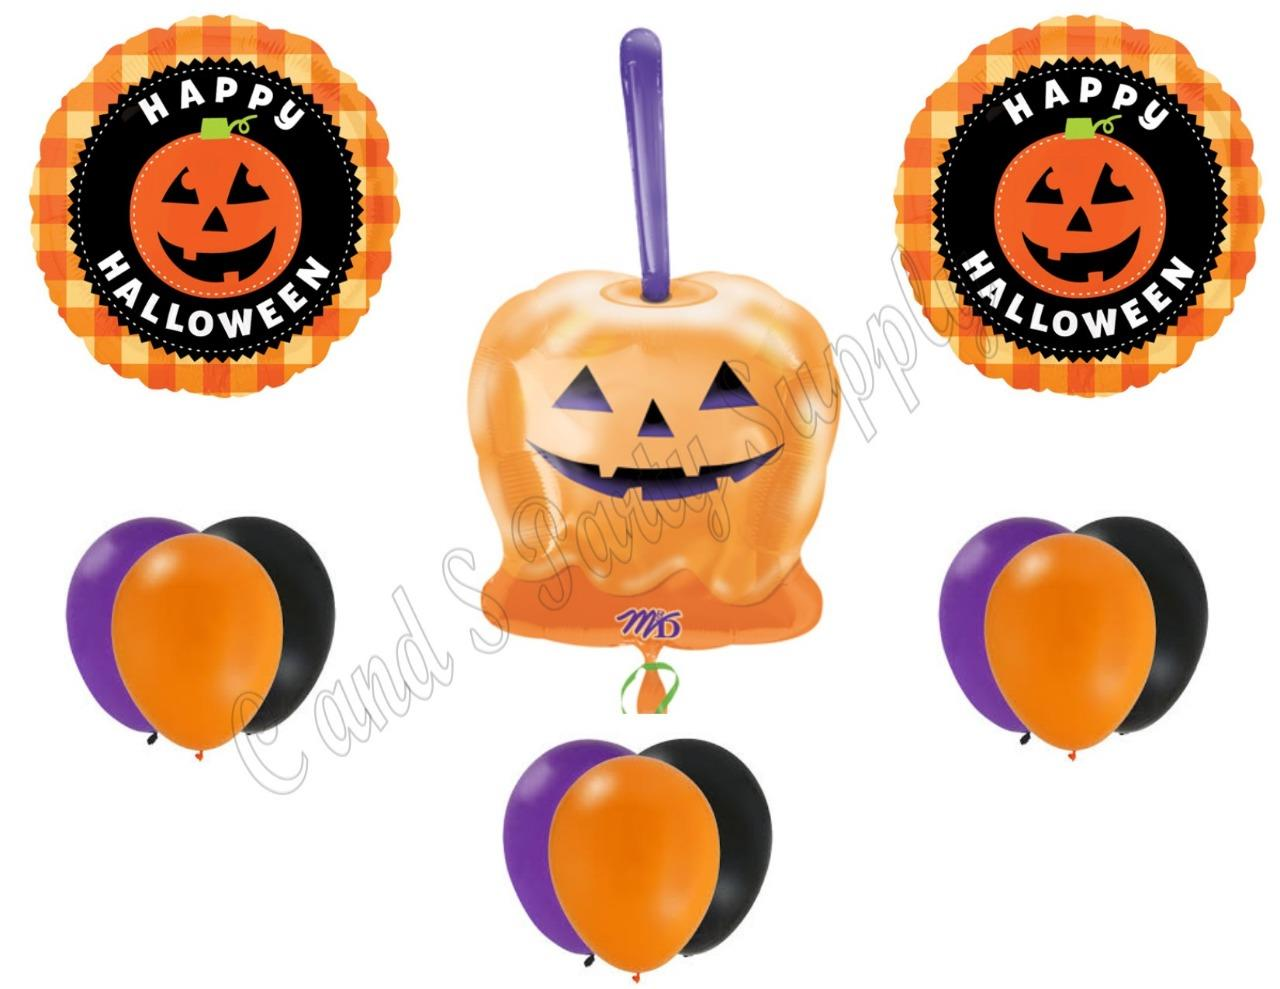 Details about CANDY APPLE HALLOWEEN Party Balloons Decoration Supplies Trick Treat Pumpkin